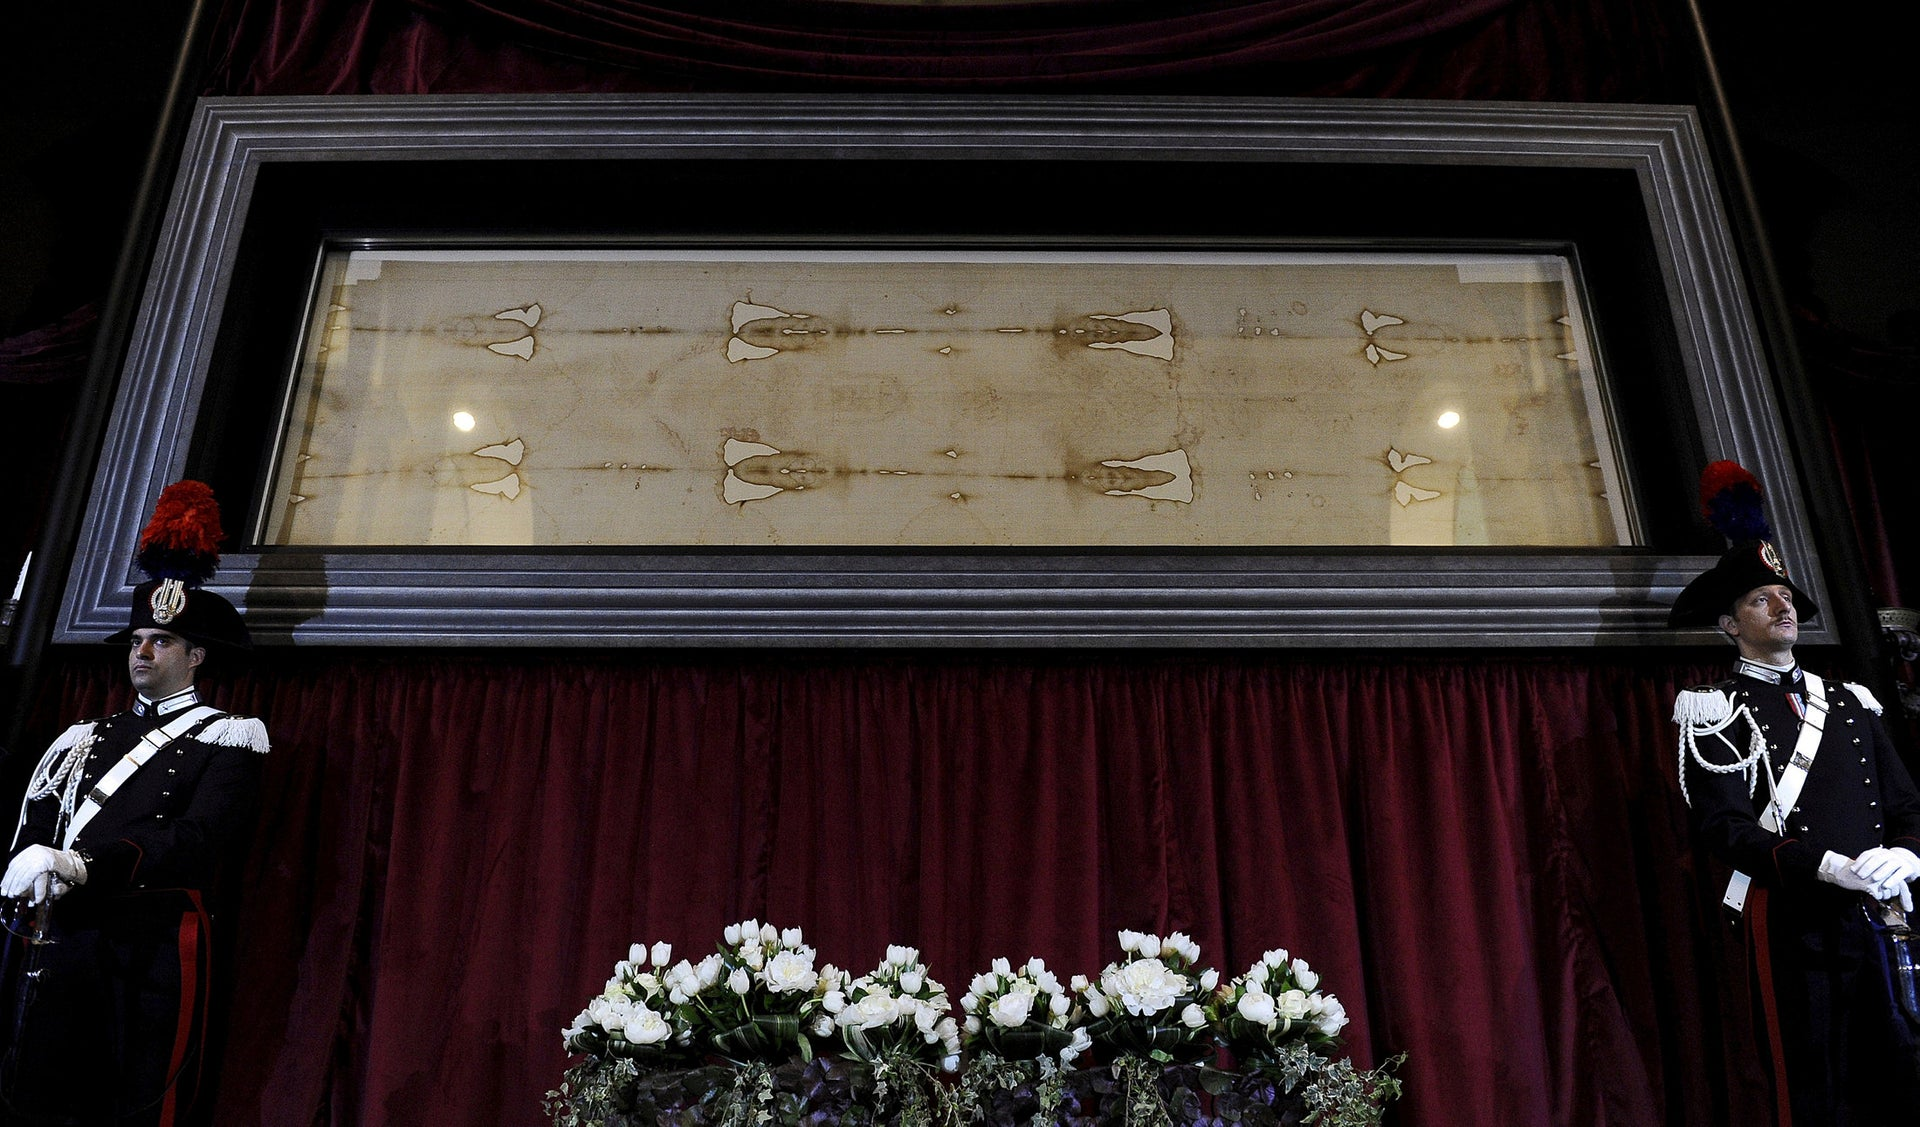 FILE PHOTO: Carabinieri's paramilitary police stands next to the Holy Shroud during a media preview of the Exposition of the Holy Shroud in the Cathedral of Turin April 18, 2015.